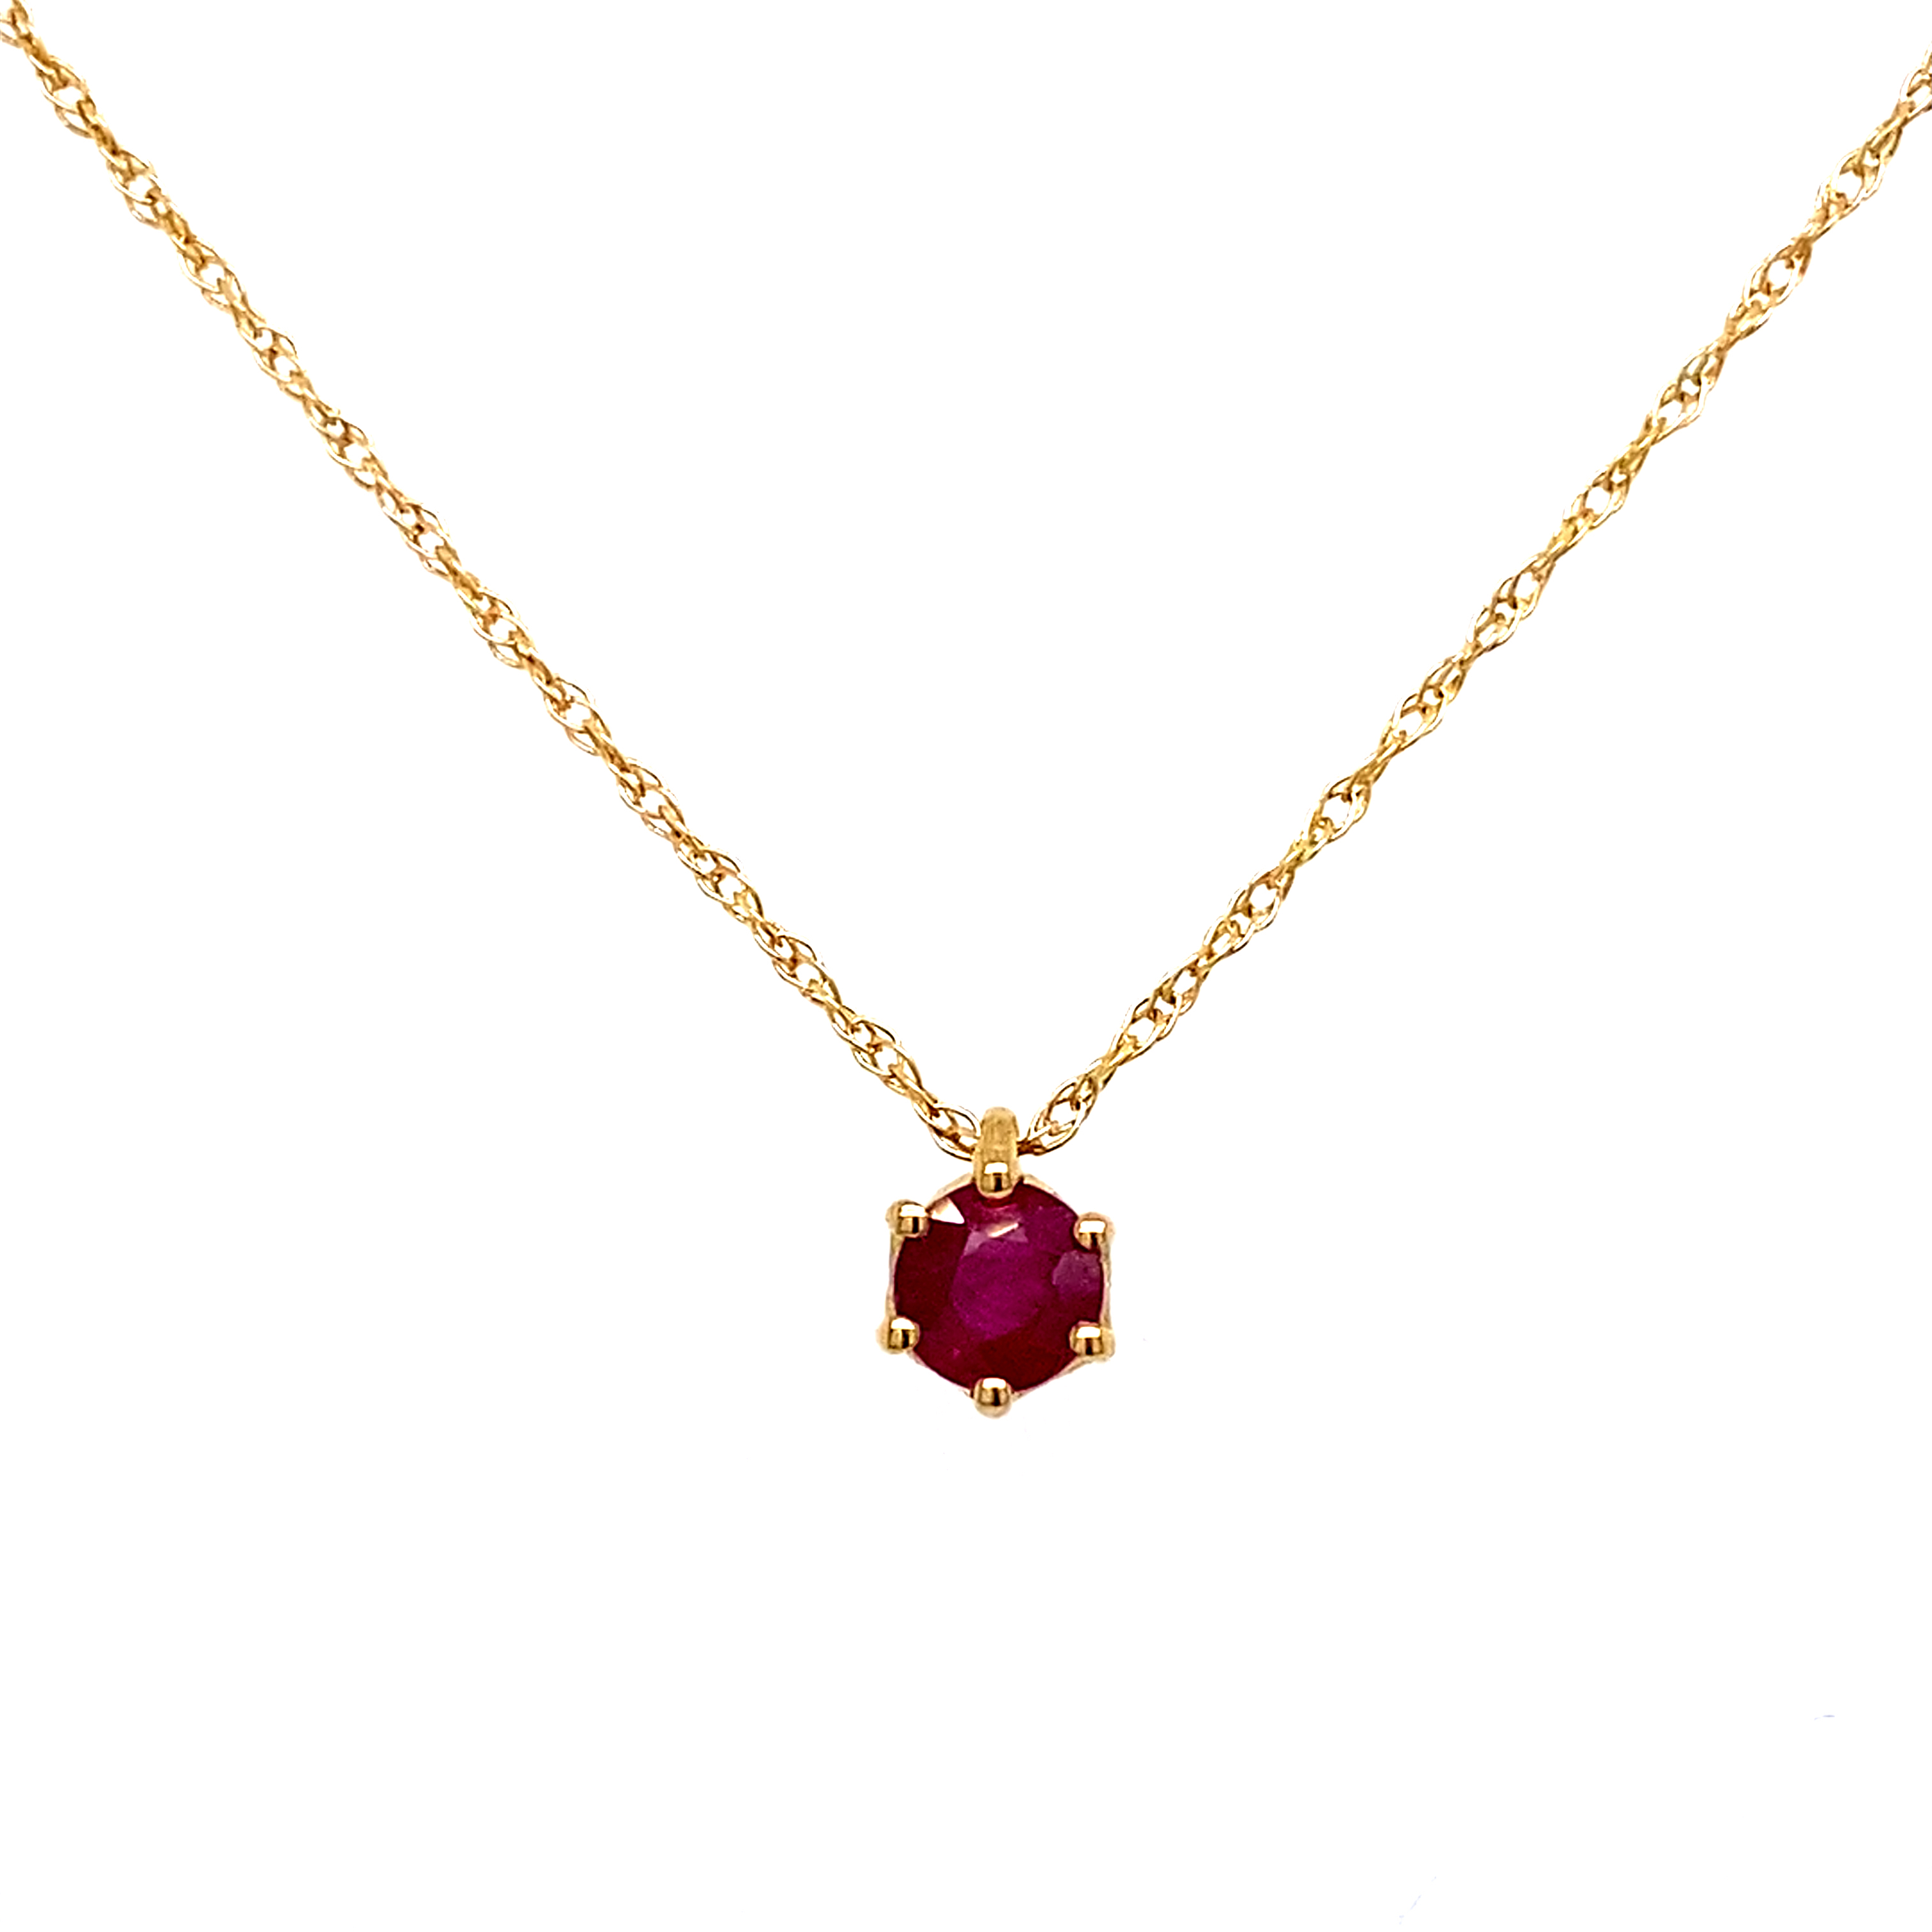 A Modern 9 Carat yellow gold ruby pendant, in a 6 claw setting.